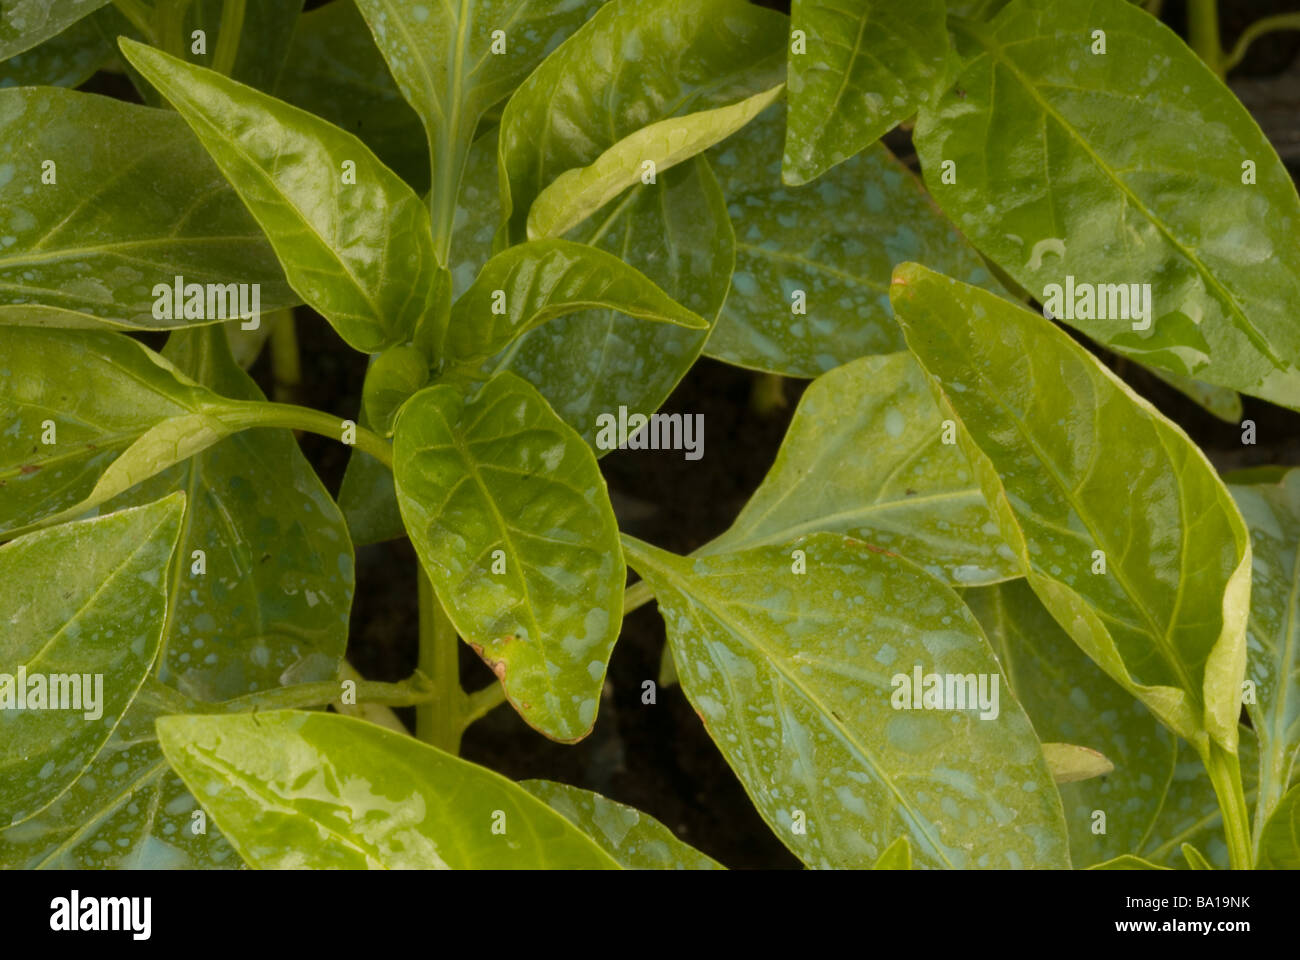 Red Bell pepper Capsicum annuum var aviculare, leafs with phitofarmacus on - Stock Image